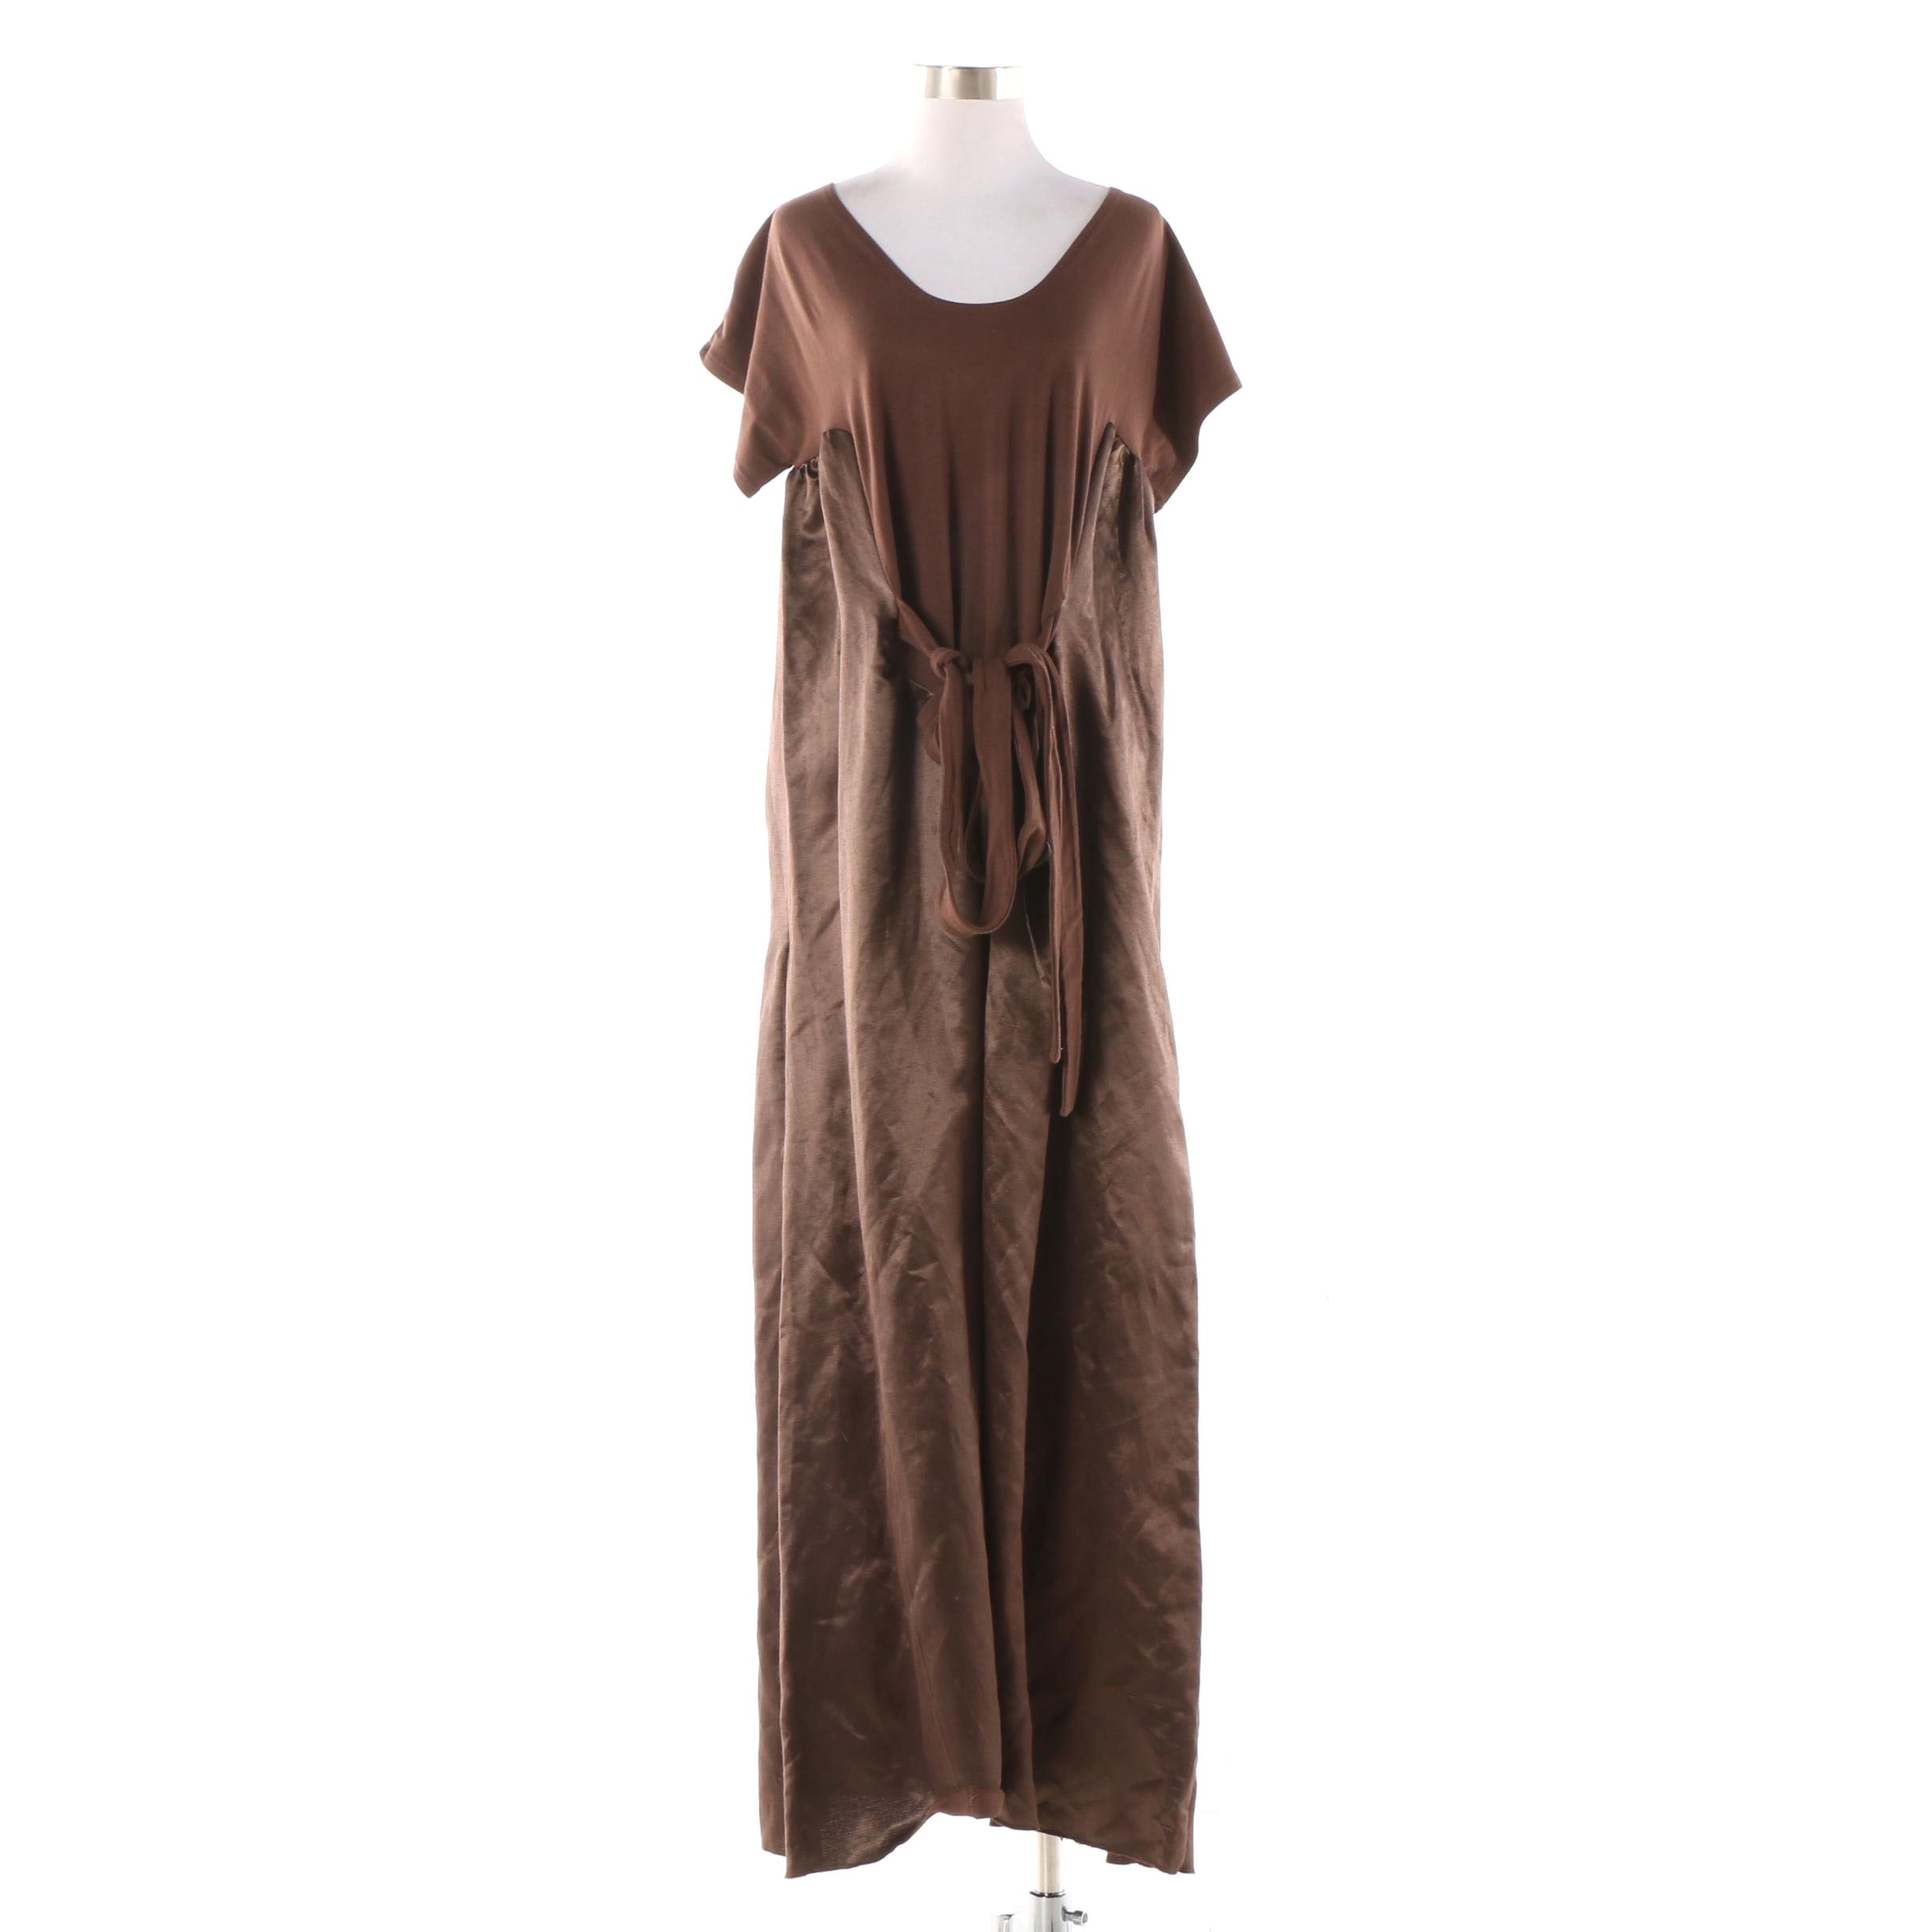 Lara Miller Brown Silk Blend Maxi Dress